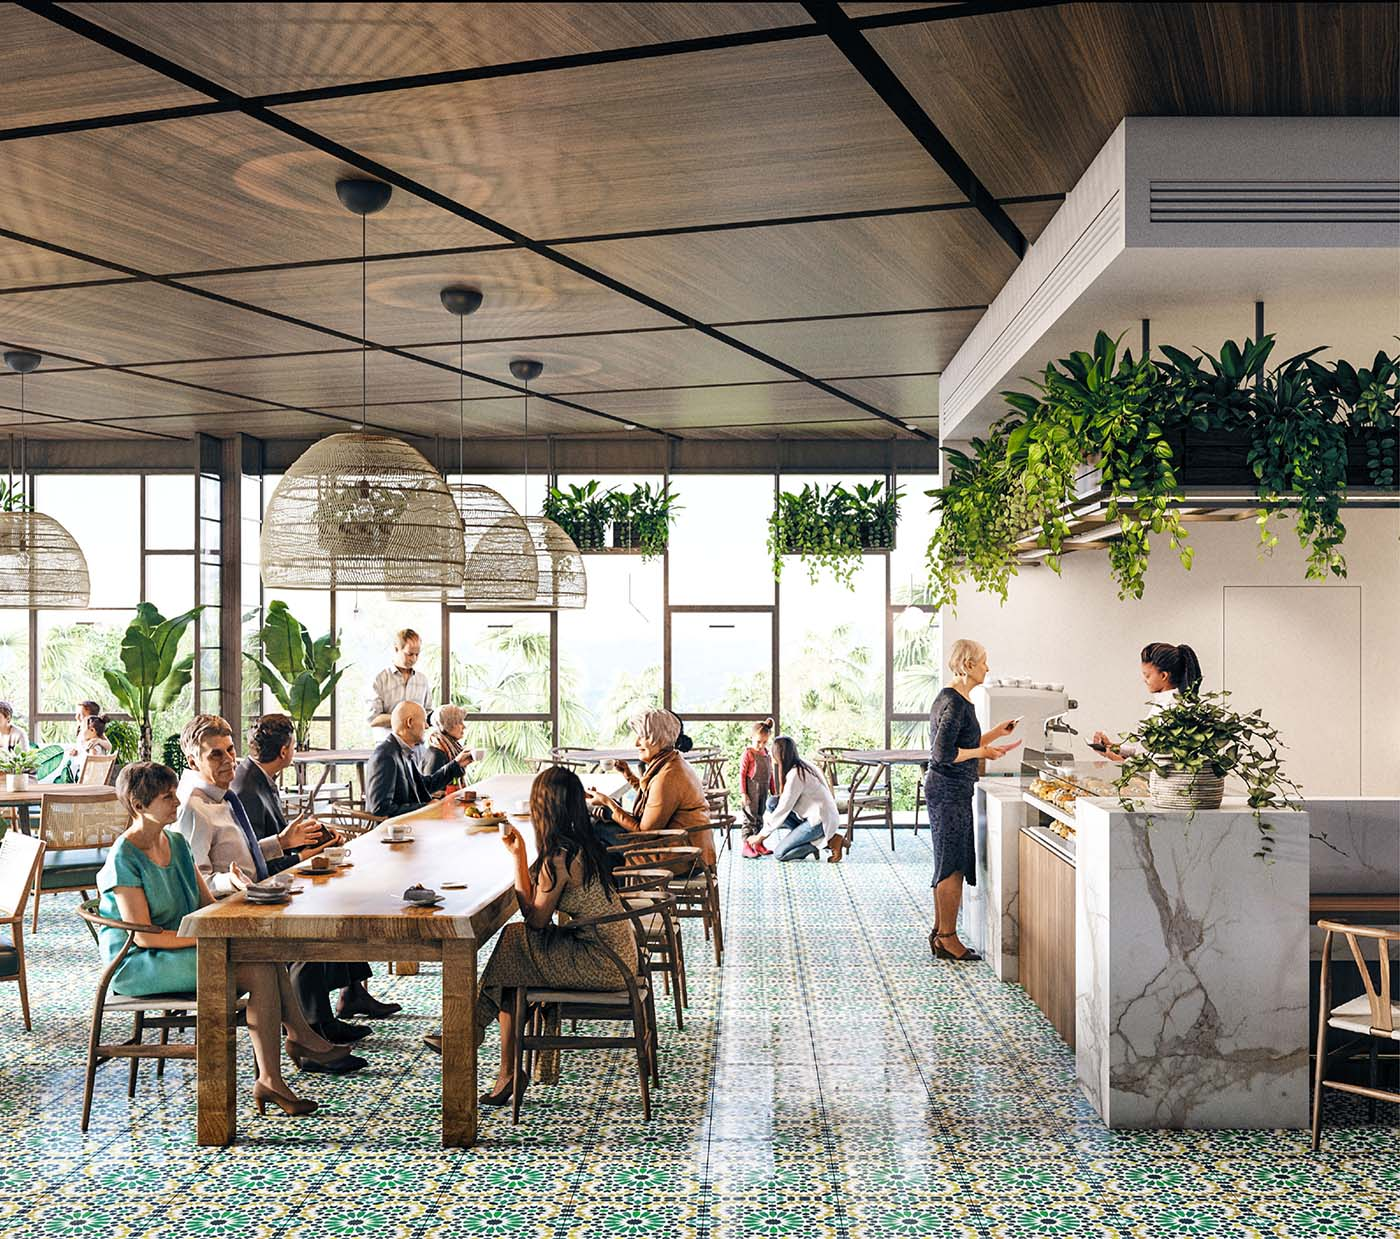 Biophilic green restaurant design with people ordering food and eating.